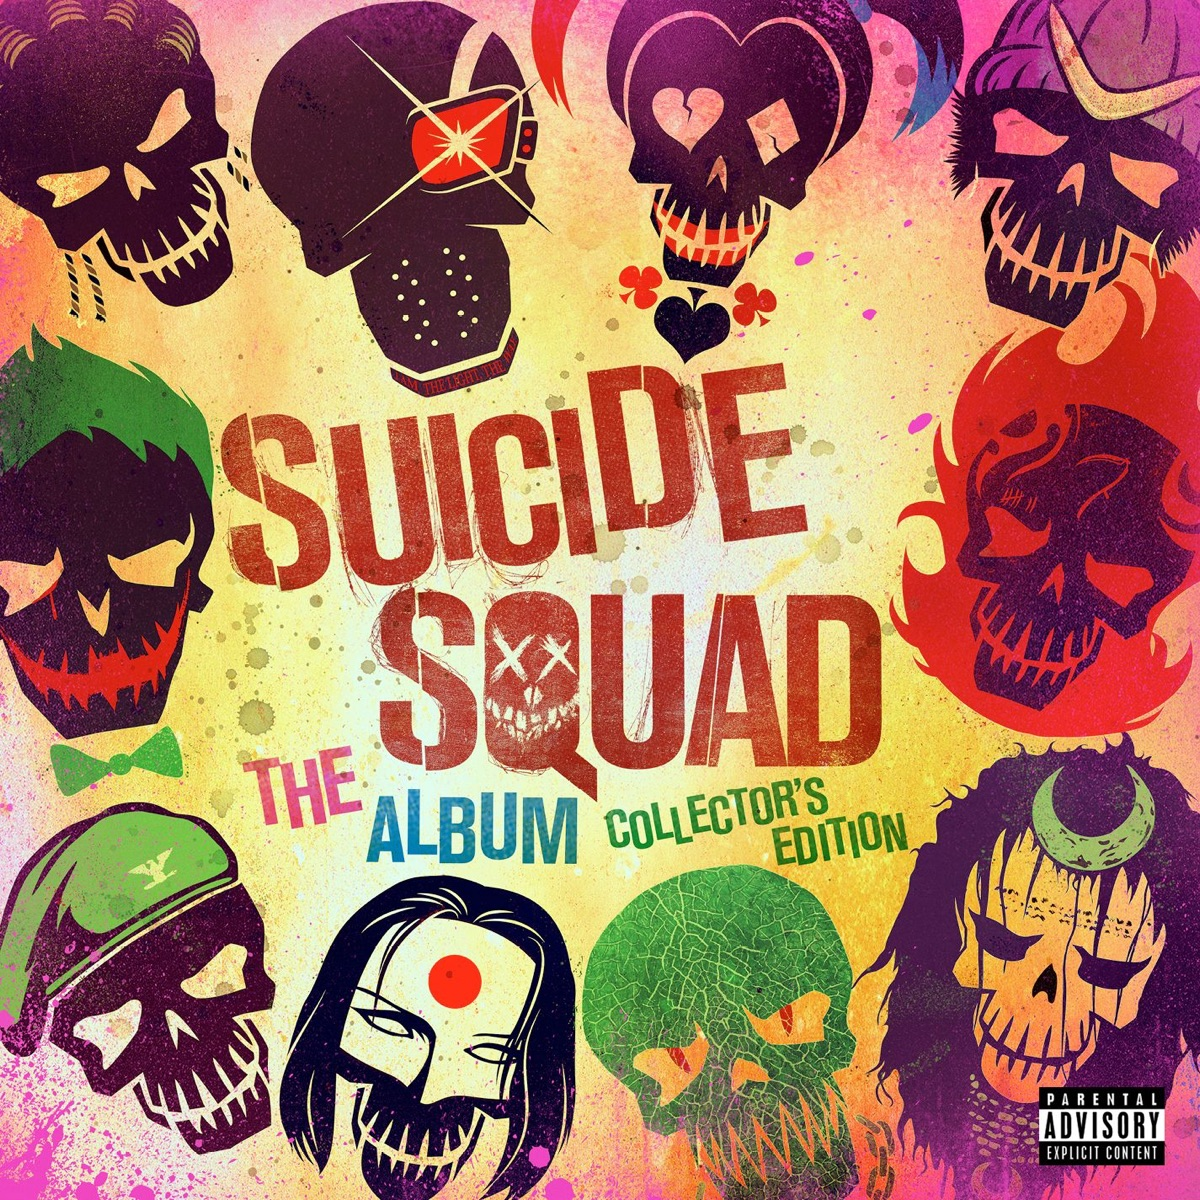 Suicide Squad The Album Collectors Edition Various Artists CD cover